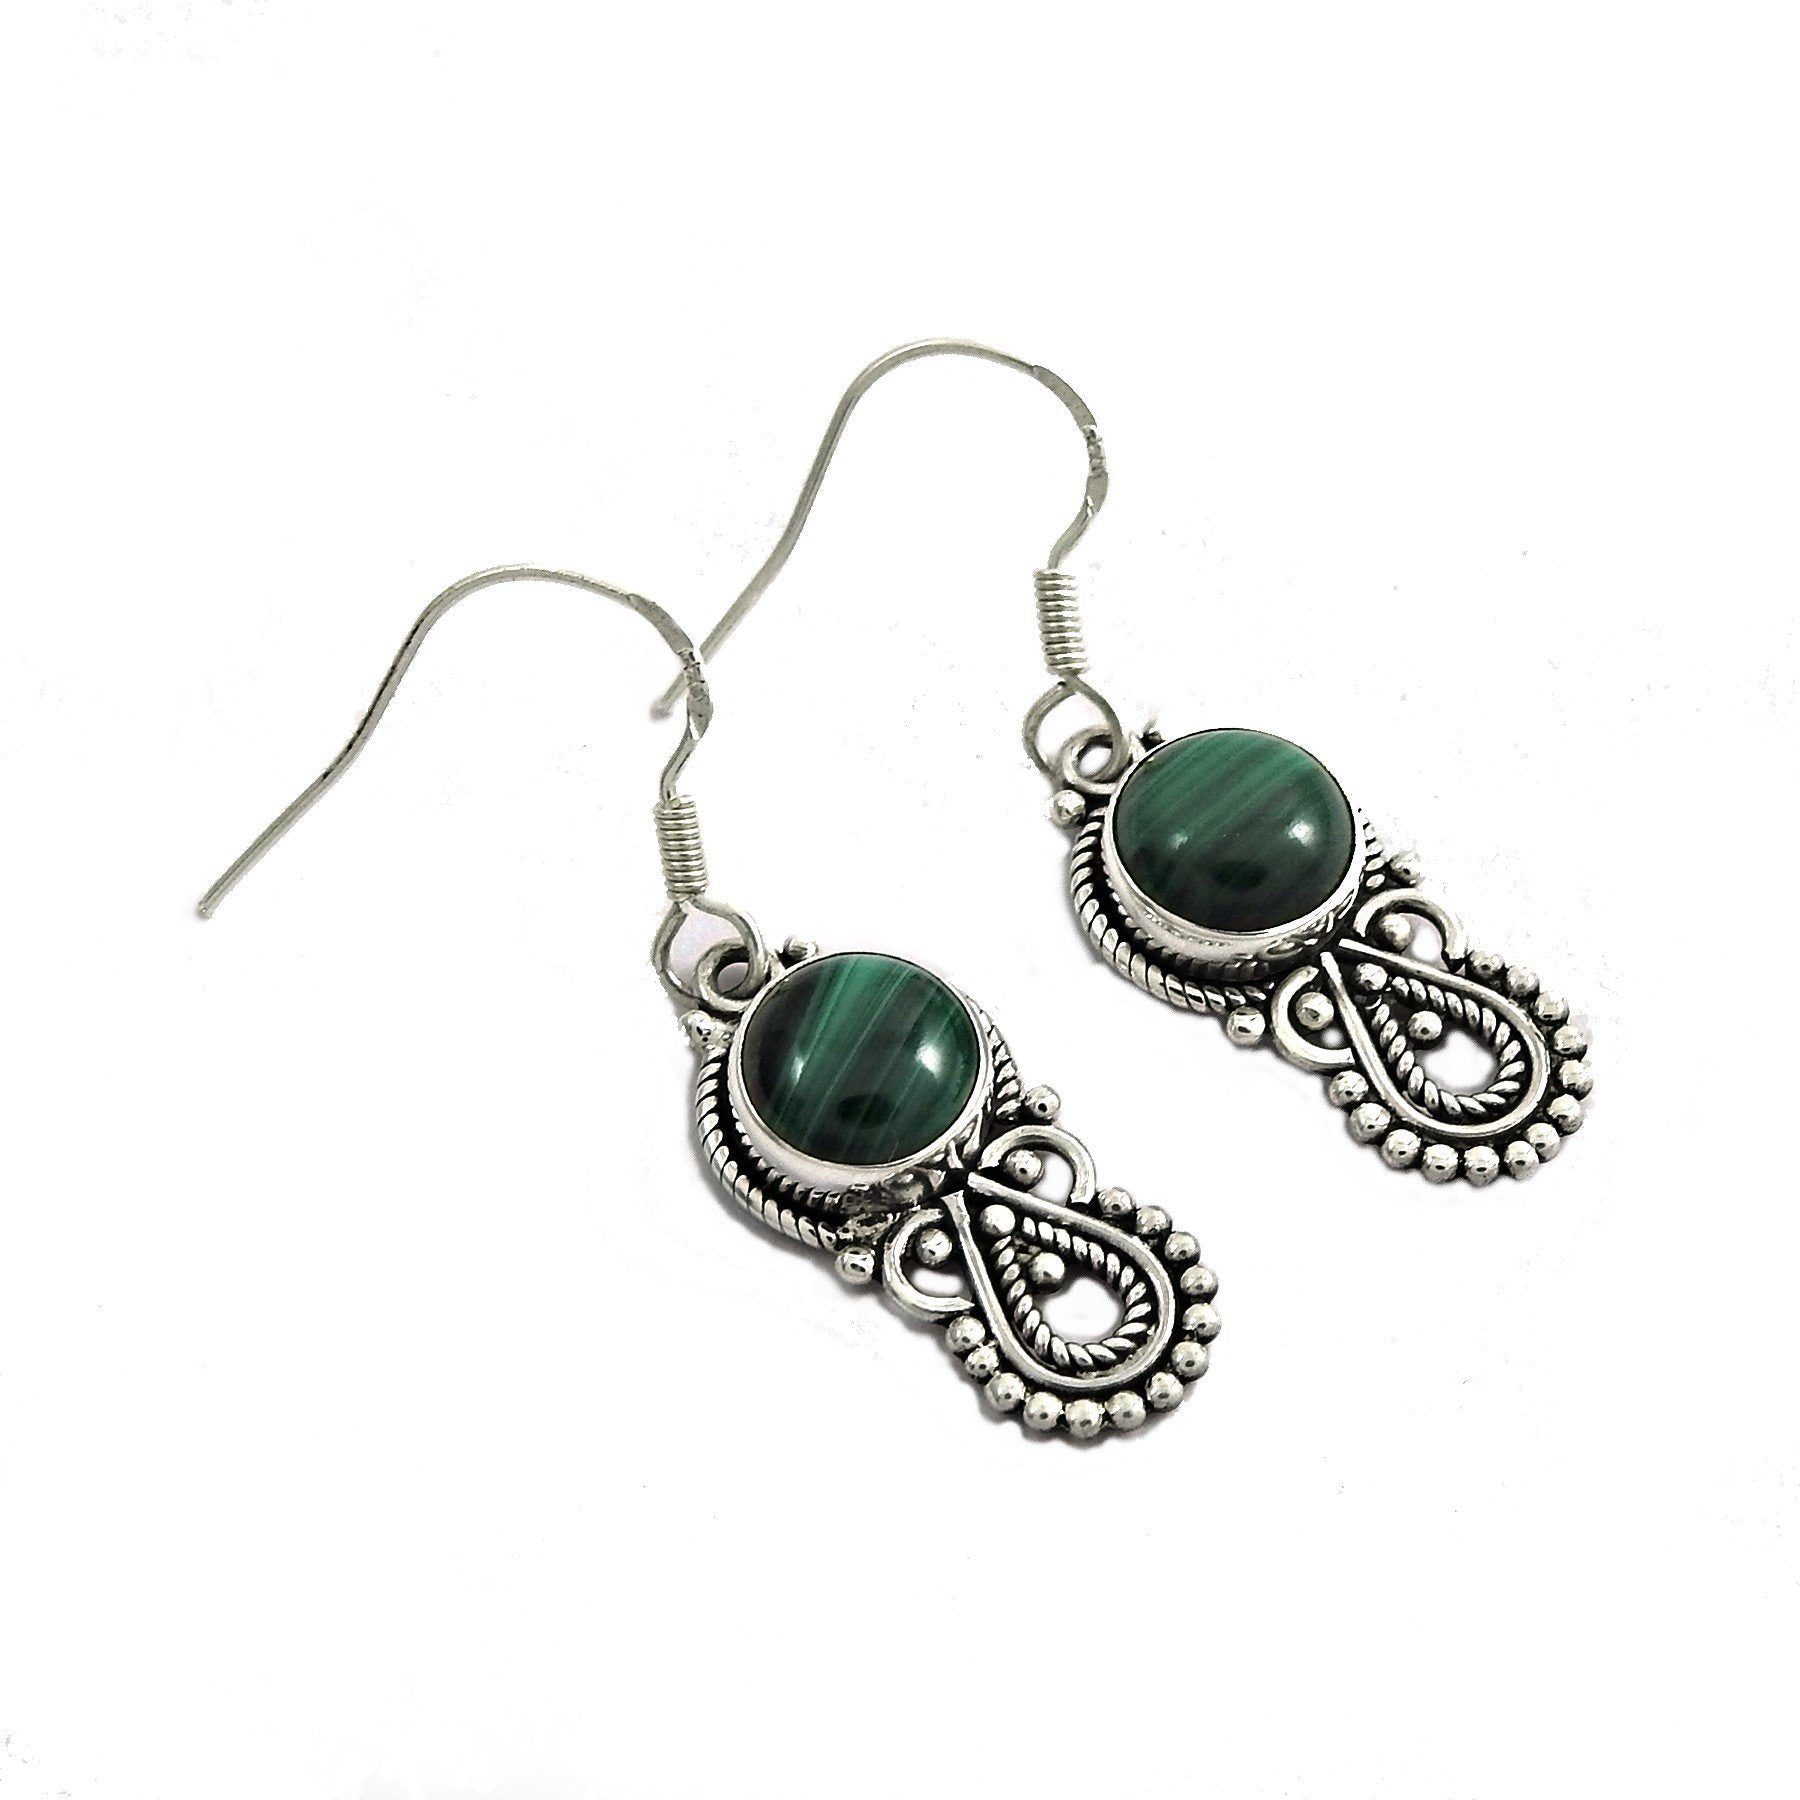 Authentic Handcrafted Sterling Silver Malachite Gemstone Earrings